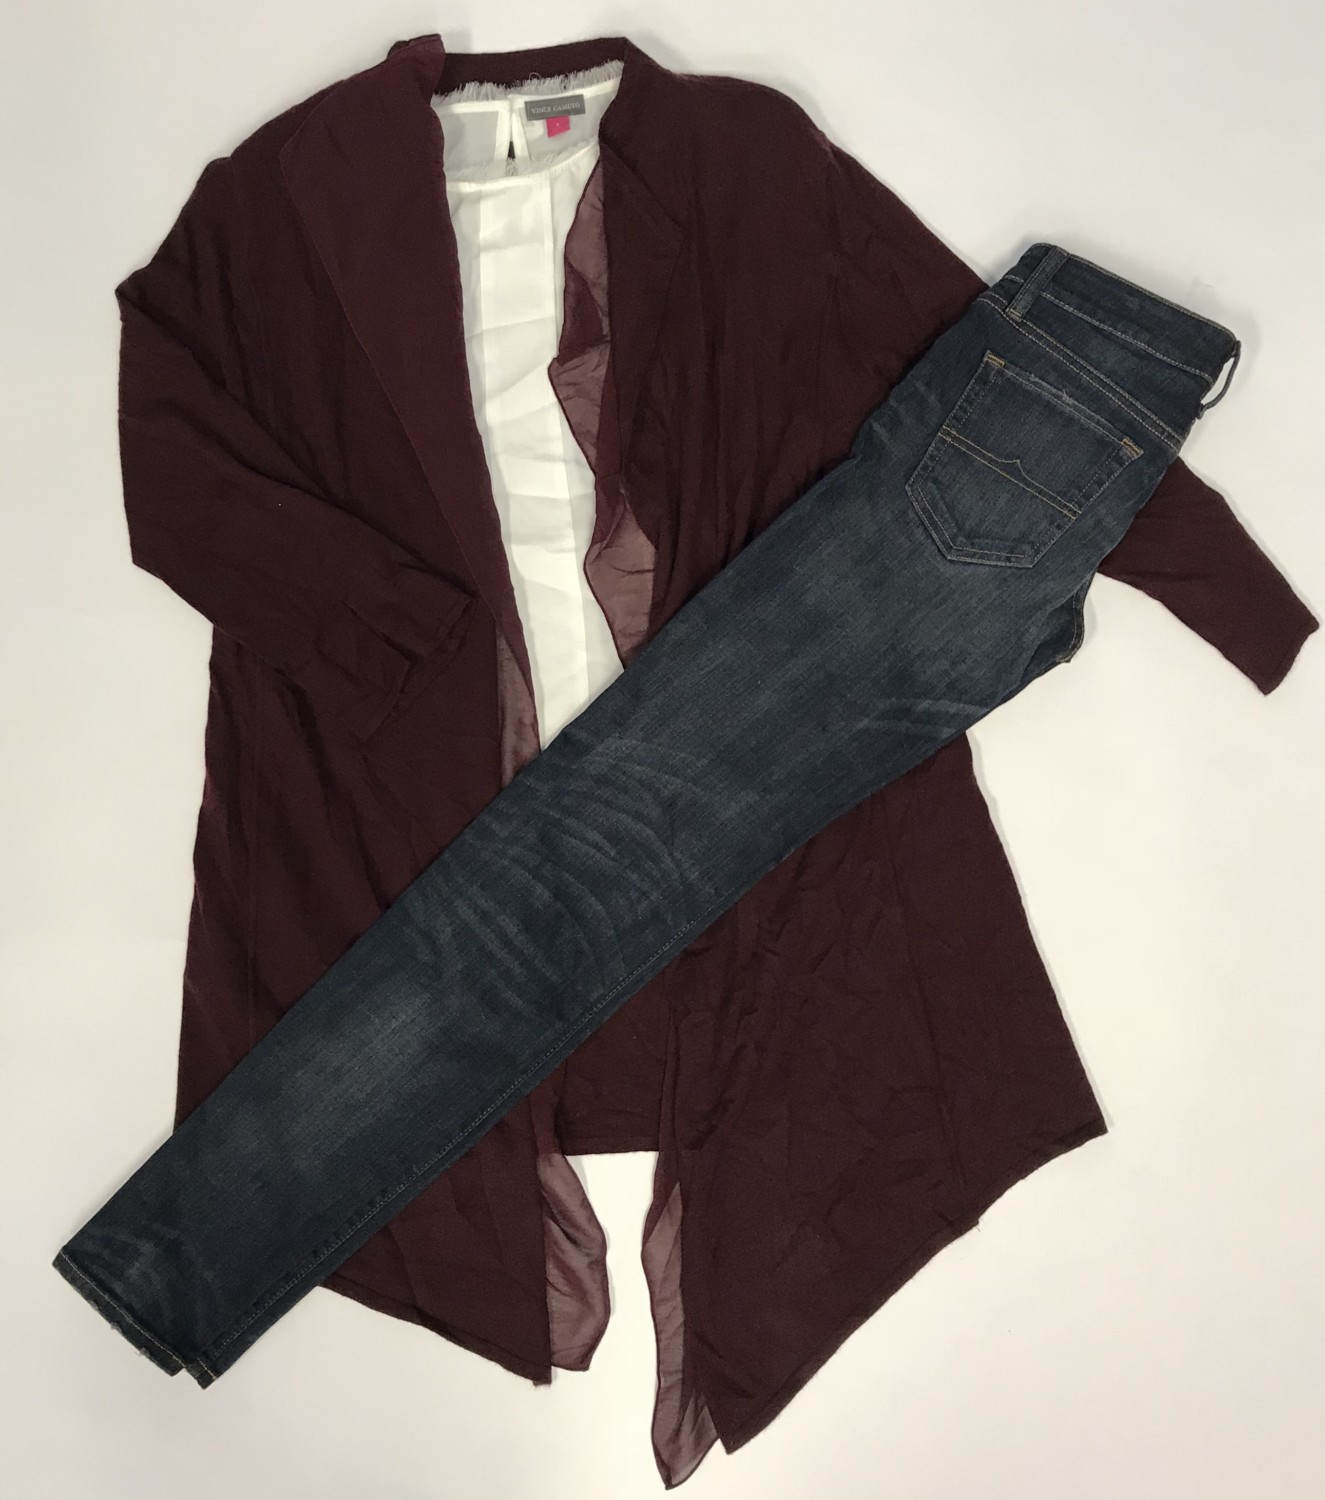 Vince Camuto Sleeveless, Anne Klein Sweater – Original Retail: $208, CWS: $48